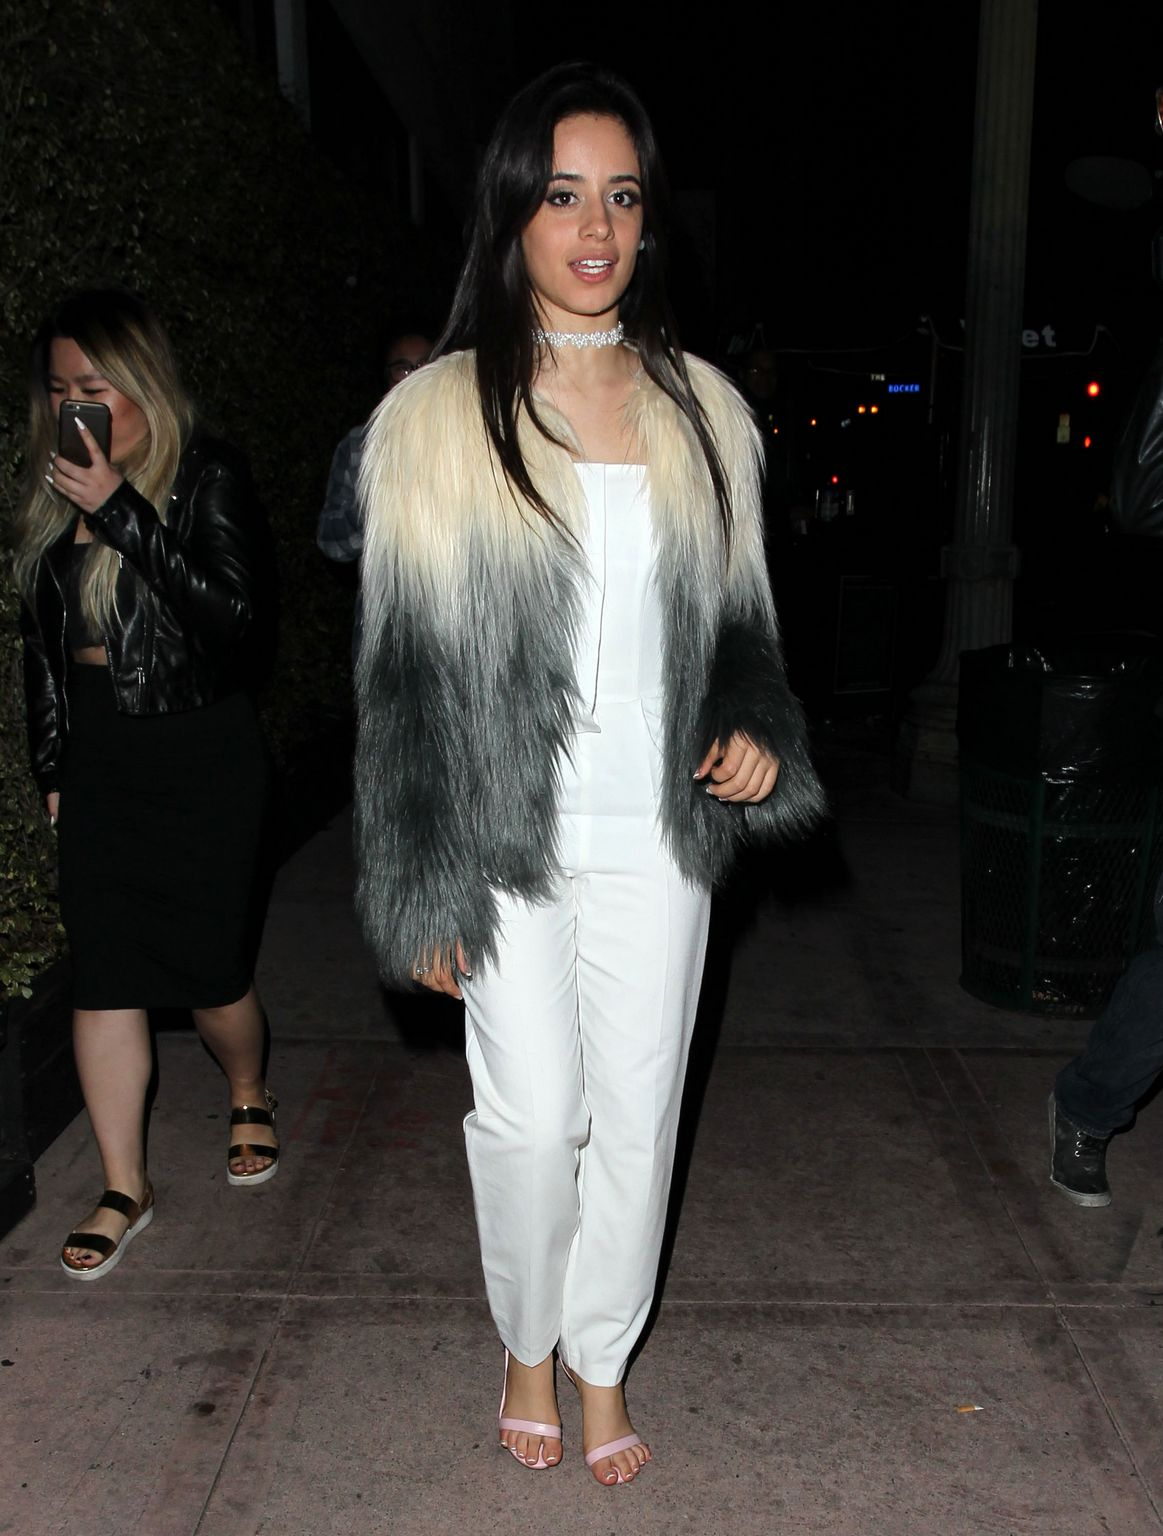 Camila Cabello at Project L.A. night club-3